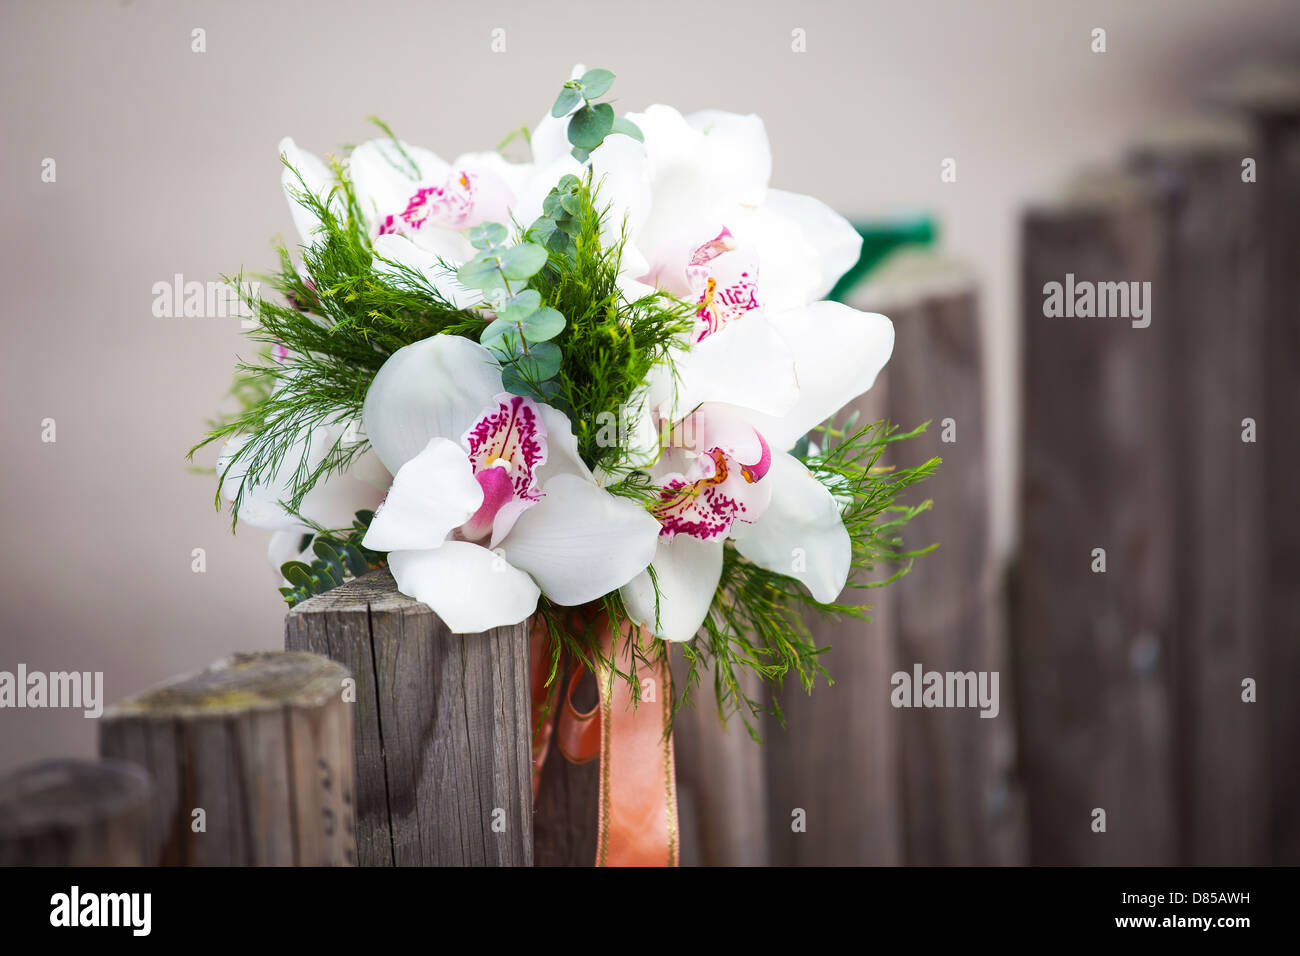 Wedding Bouquet With White Orchids On Rustic Country Fence Stock